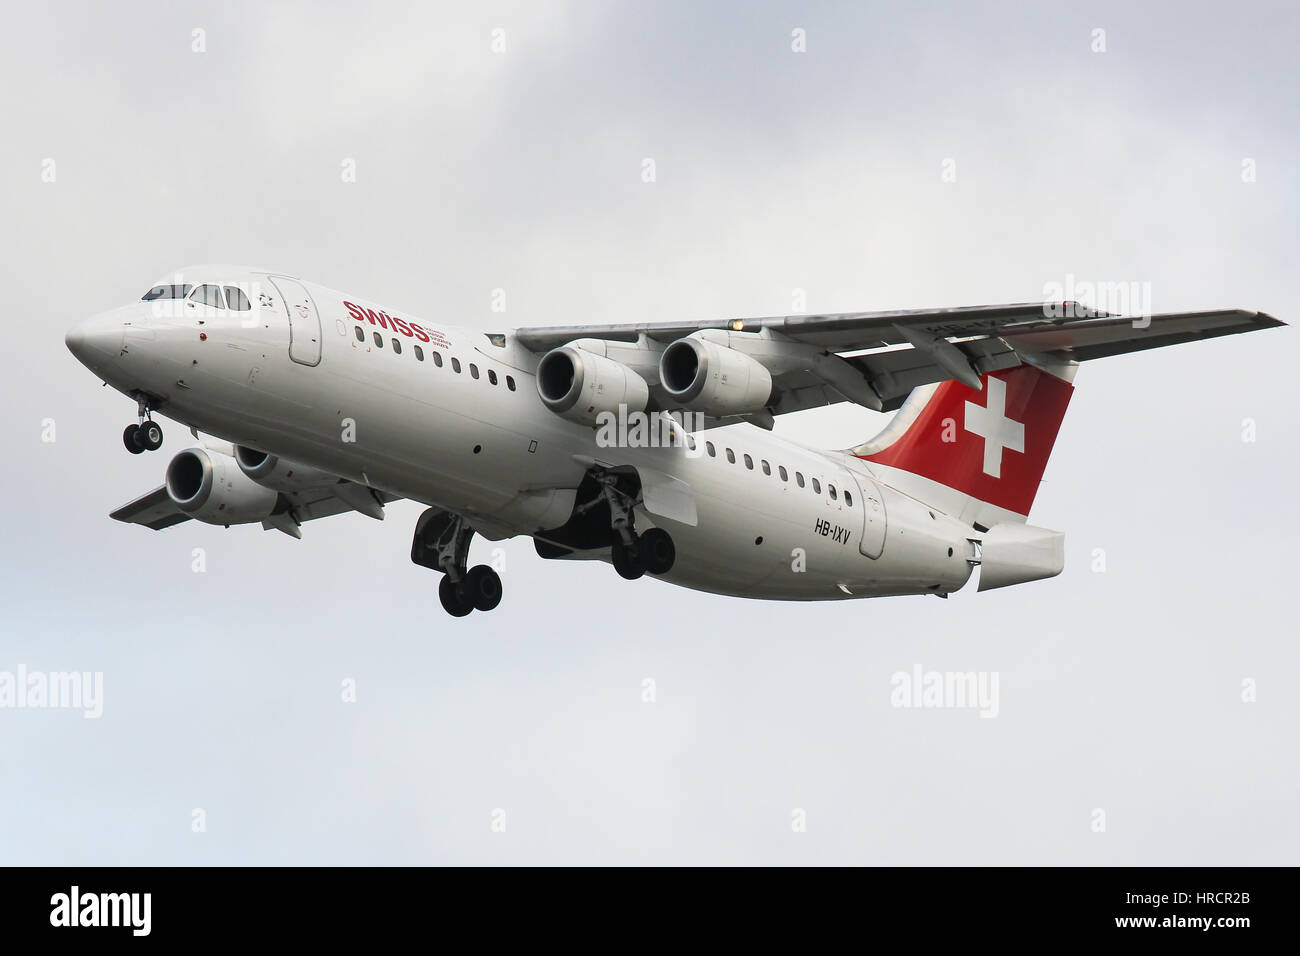 Swiss Airlines Avro RJ100 at London City Airport - Stock Image